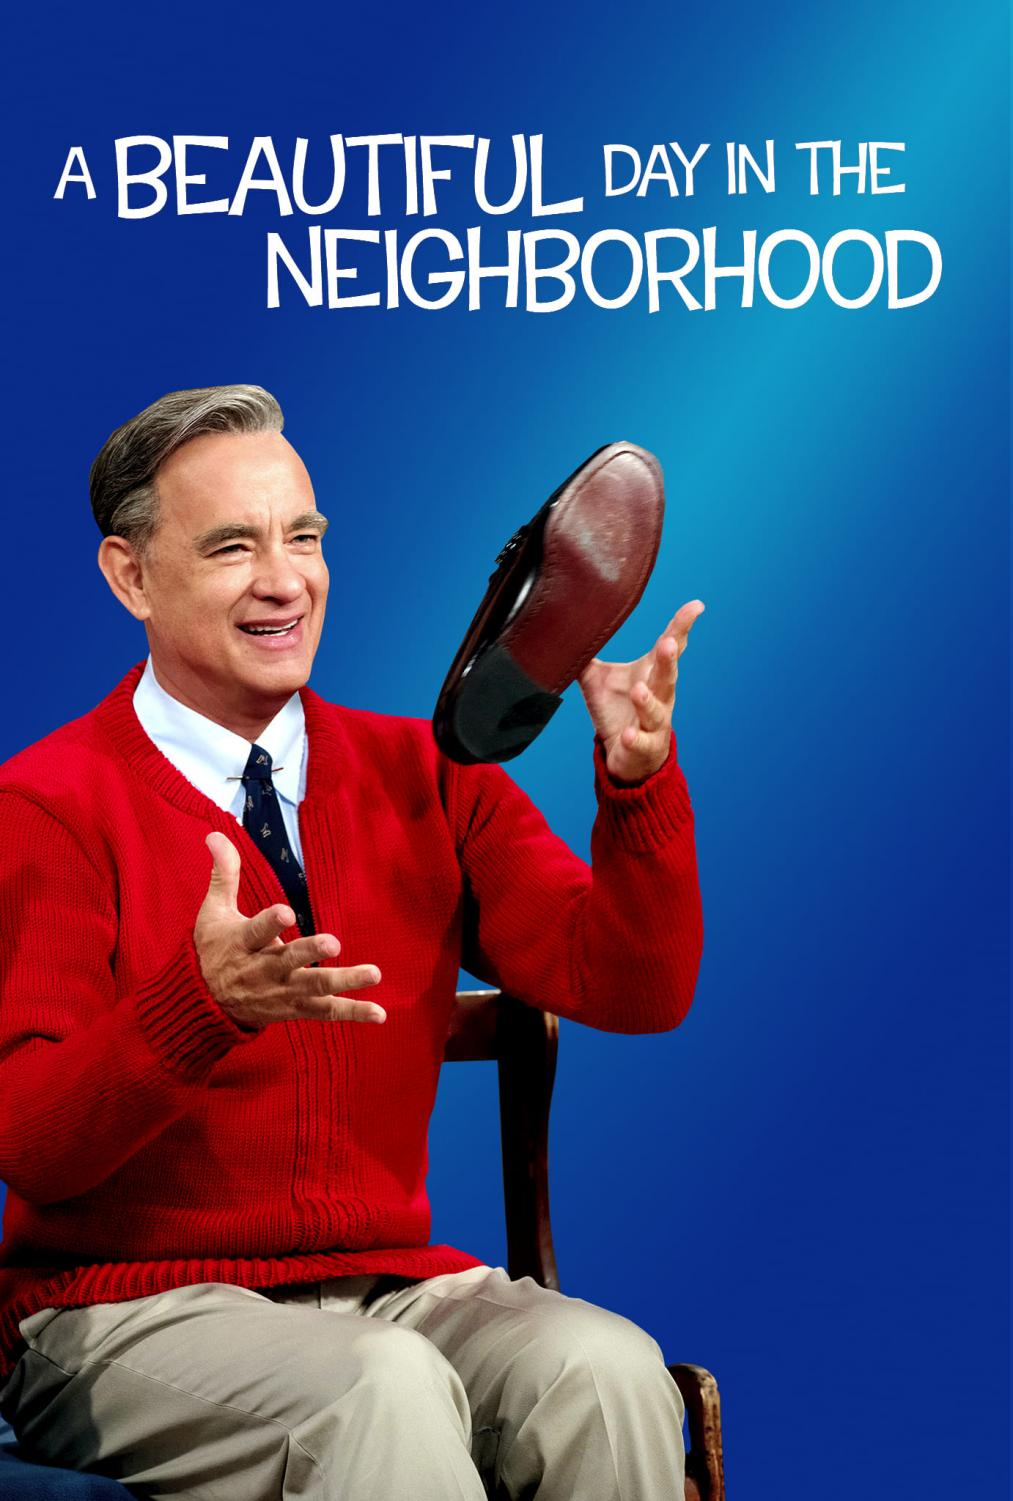 A Beautiful Day in the Neighborhood is now in theaters.